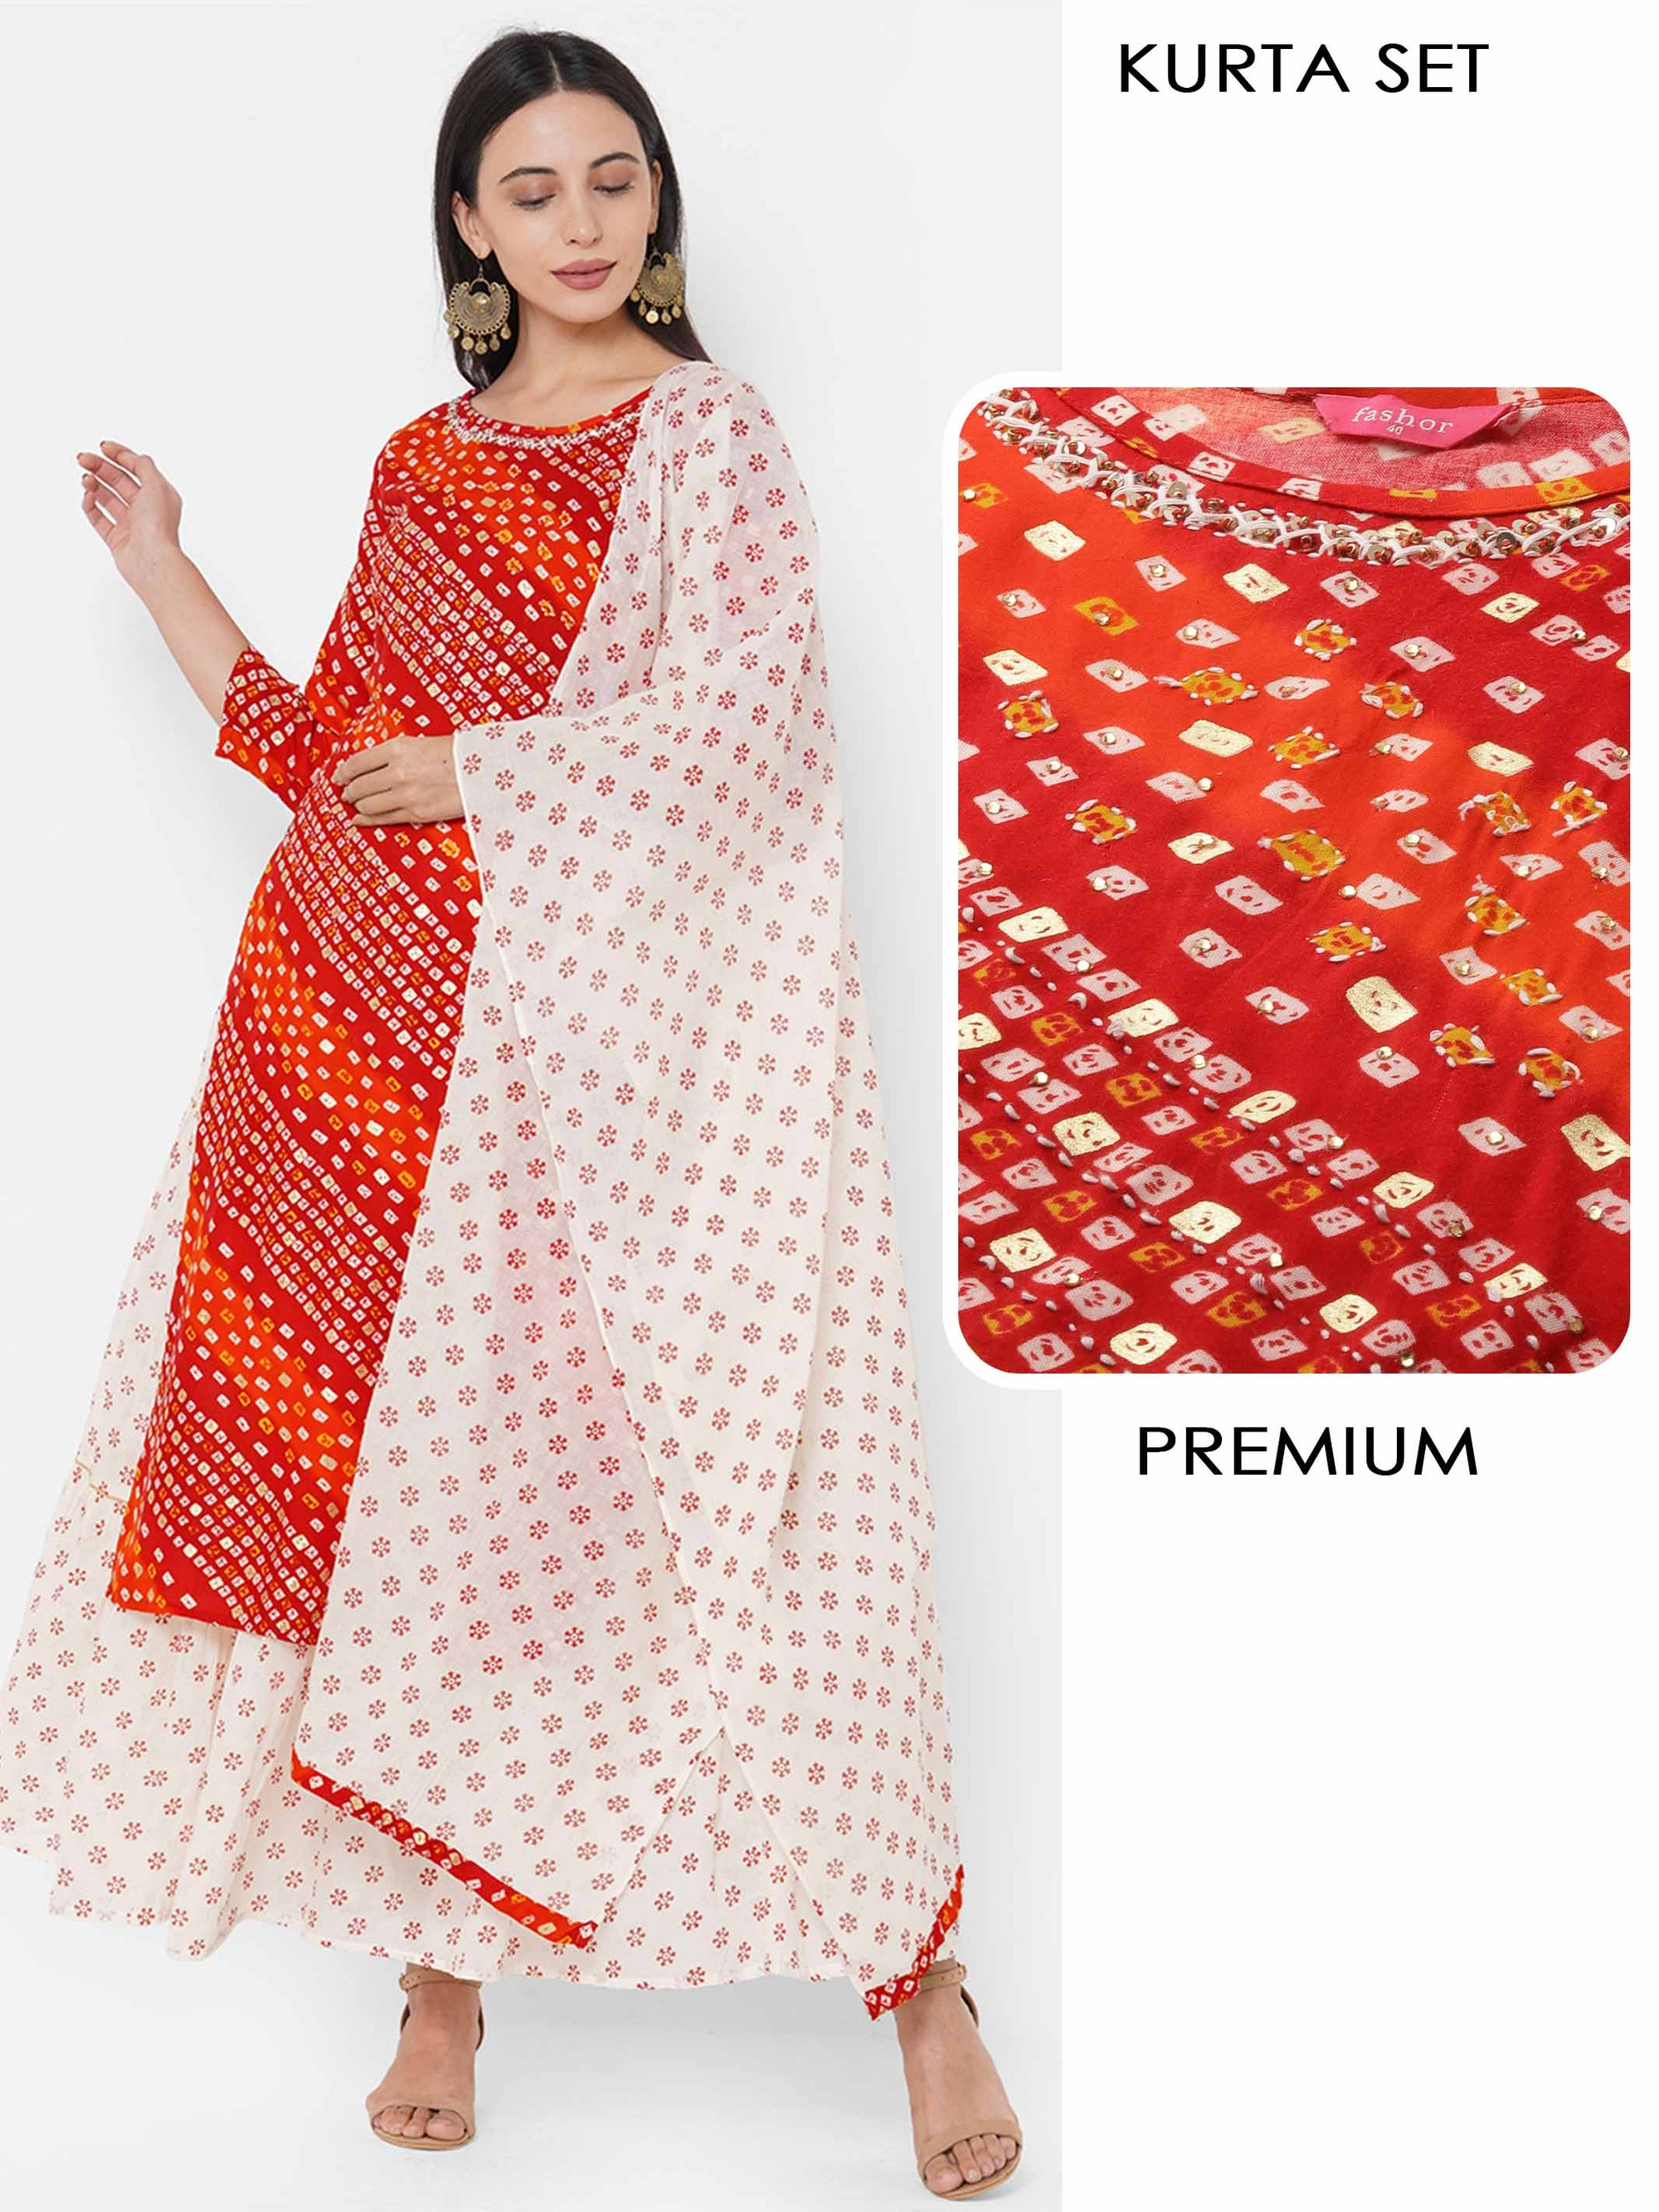 Bandhani Printed & Embroidered Kurta with Ethnic Printed Skirt & Ethnic Printed Dupatta - Red